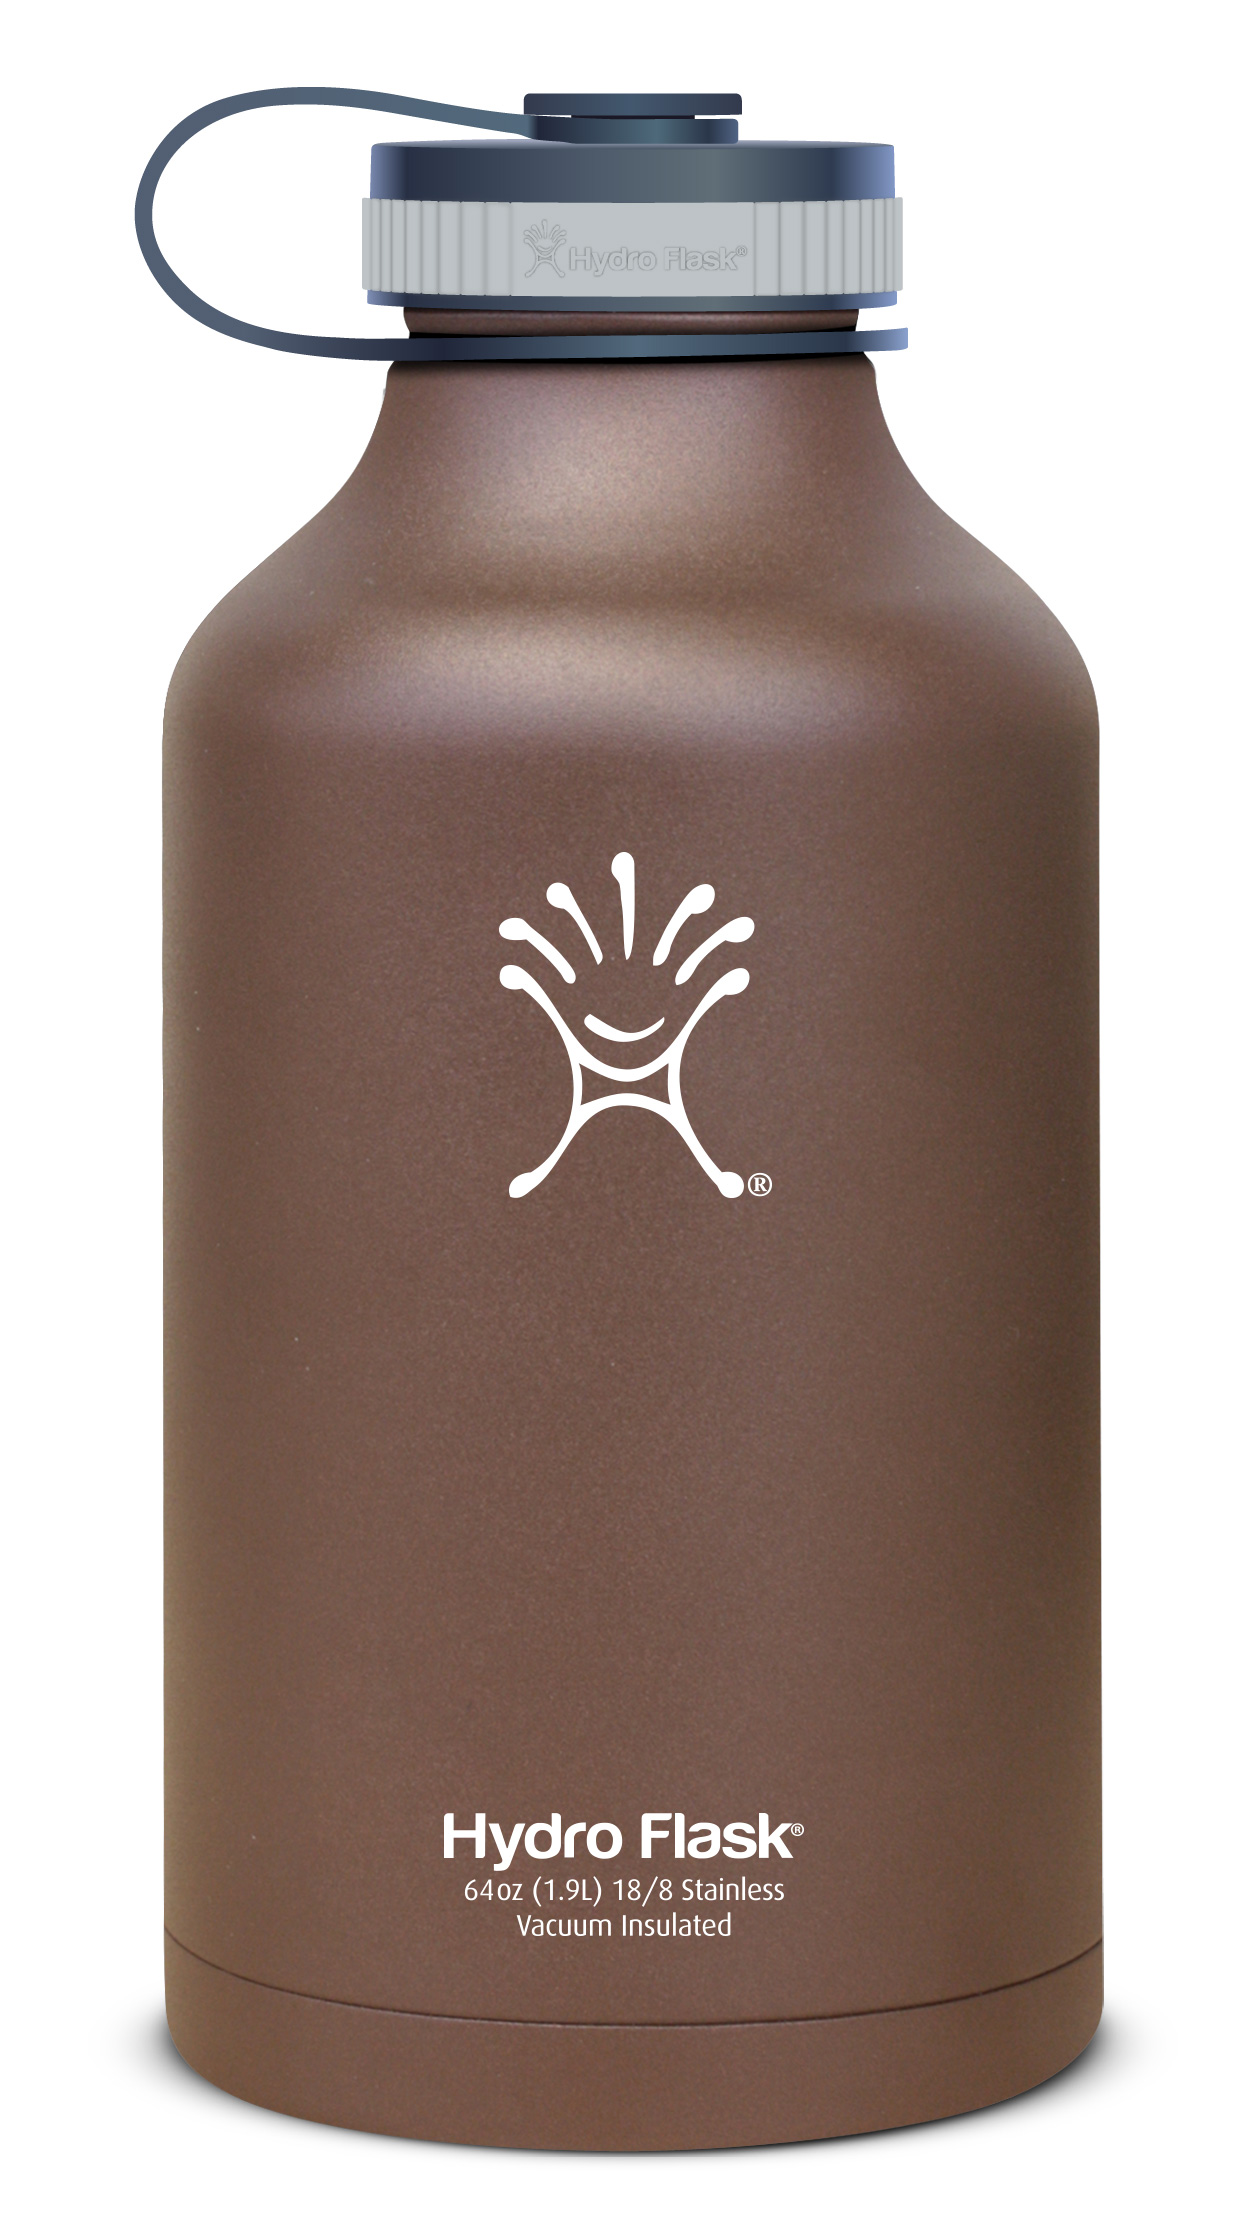 Hydro Flask Introduces New Copper Brown Growler